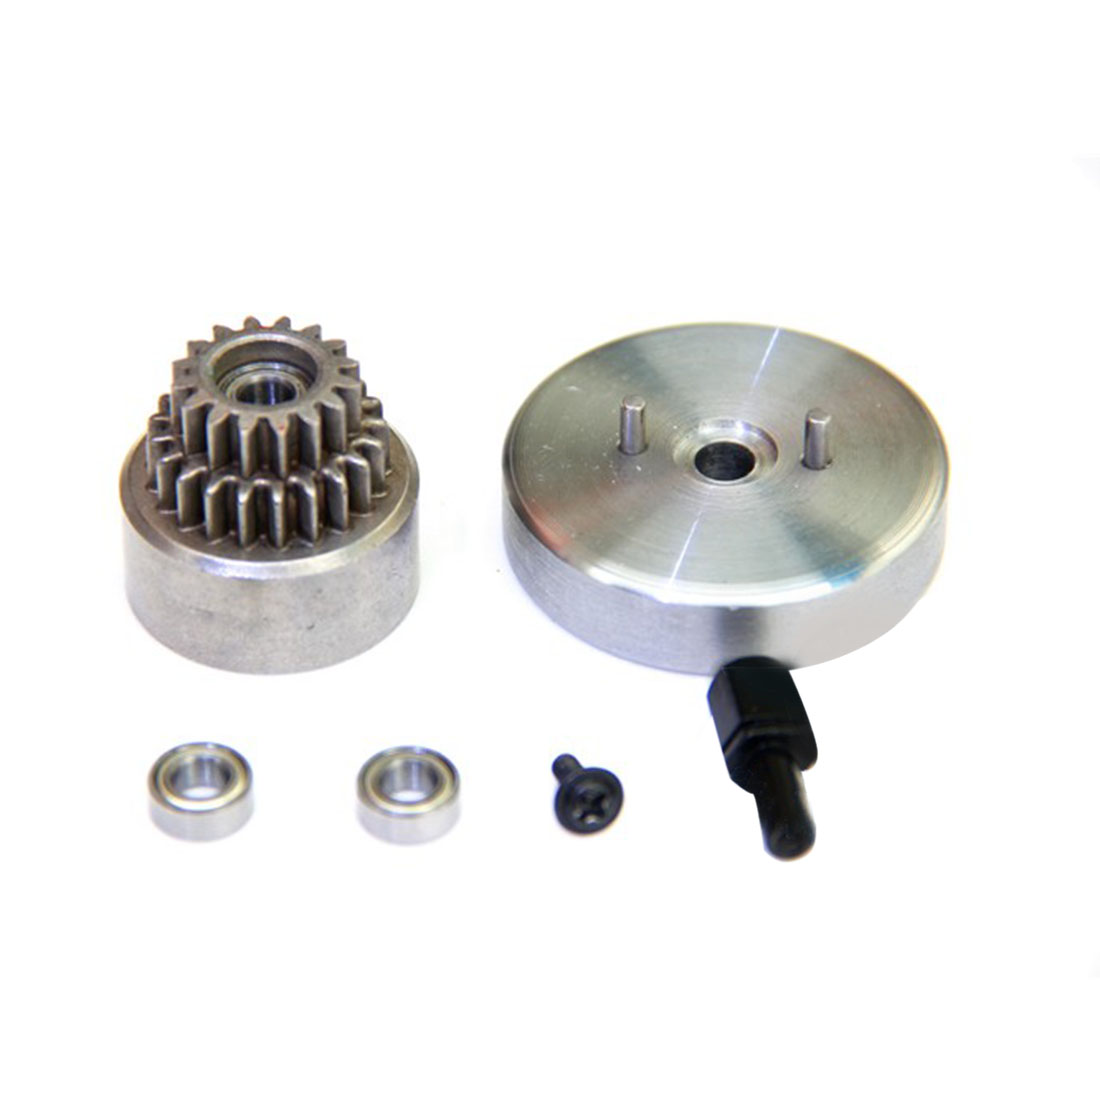 Toyan Engine Double Gears Clutch Modified Kit For Toyan FS-S100 FS-S100G FS-S100(W)FS-S100G(W)